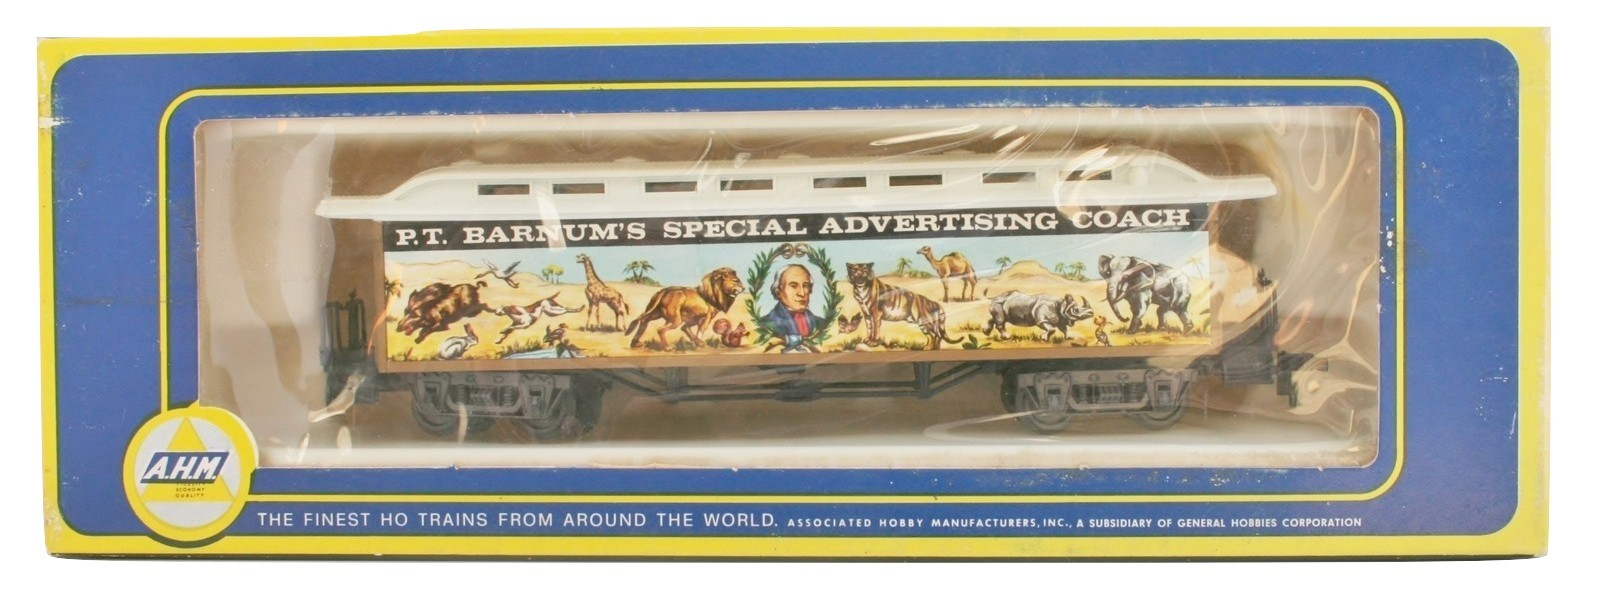 Vintage AHM Barnum Special Advertising Coach NIB 6234-B